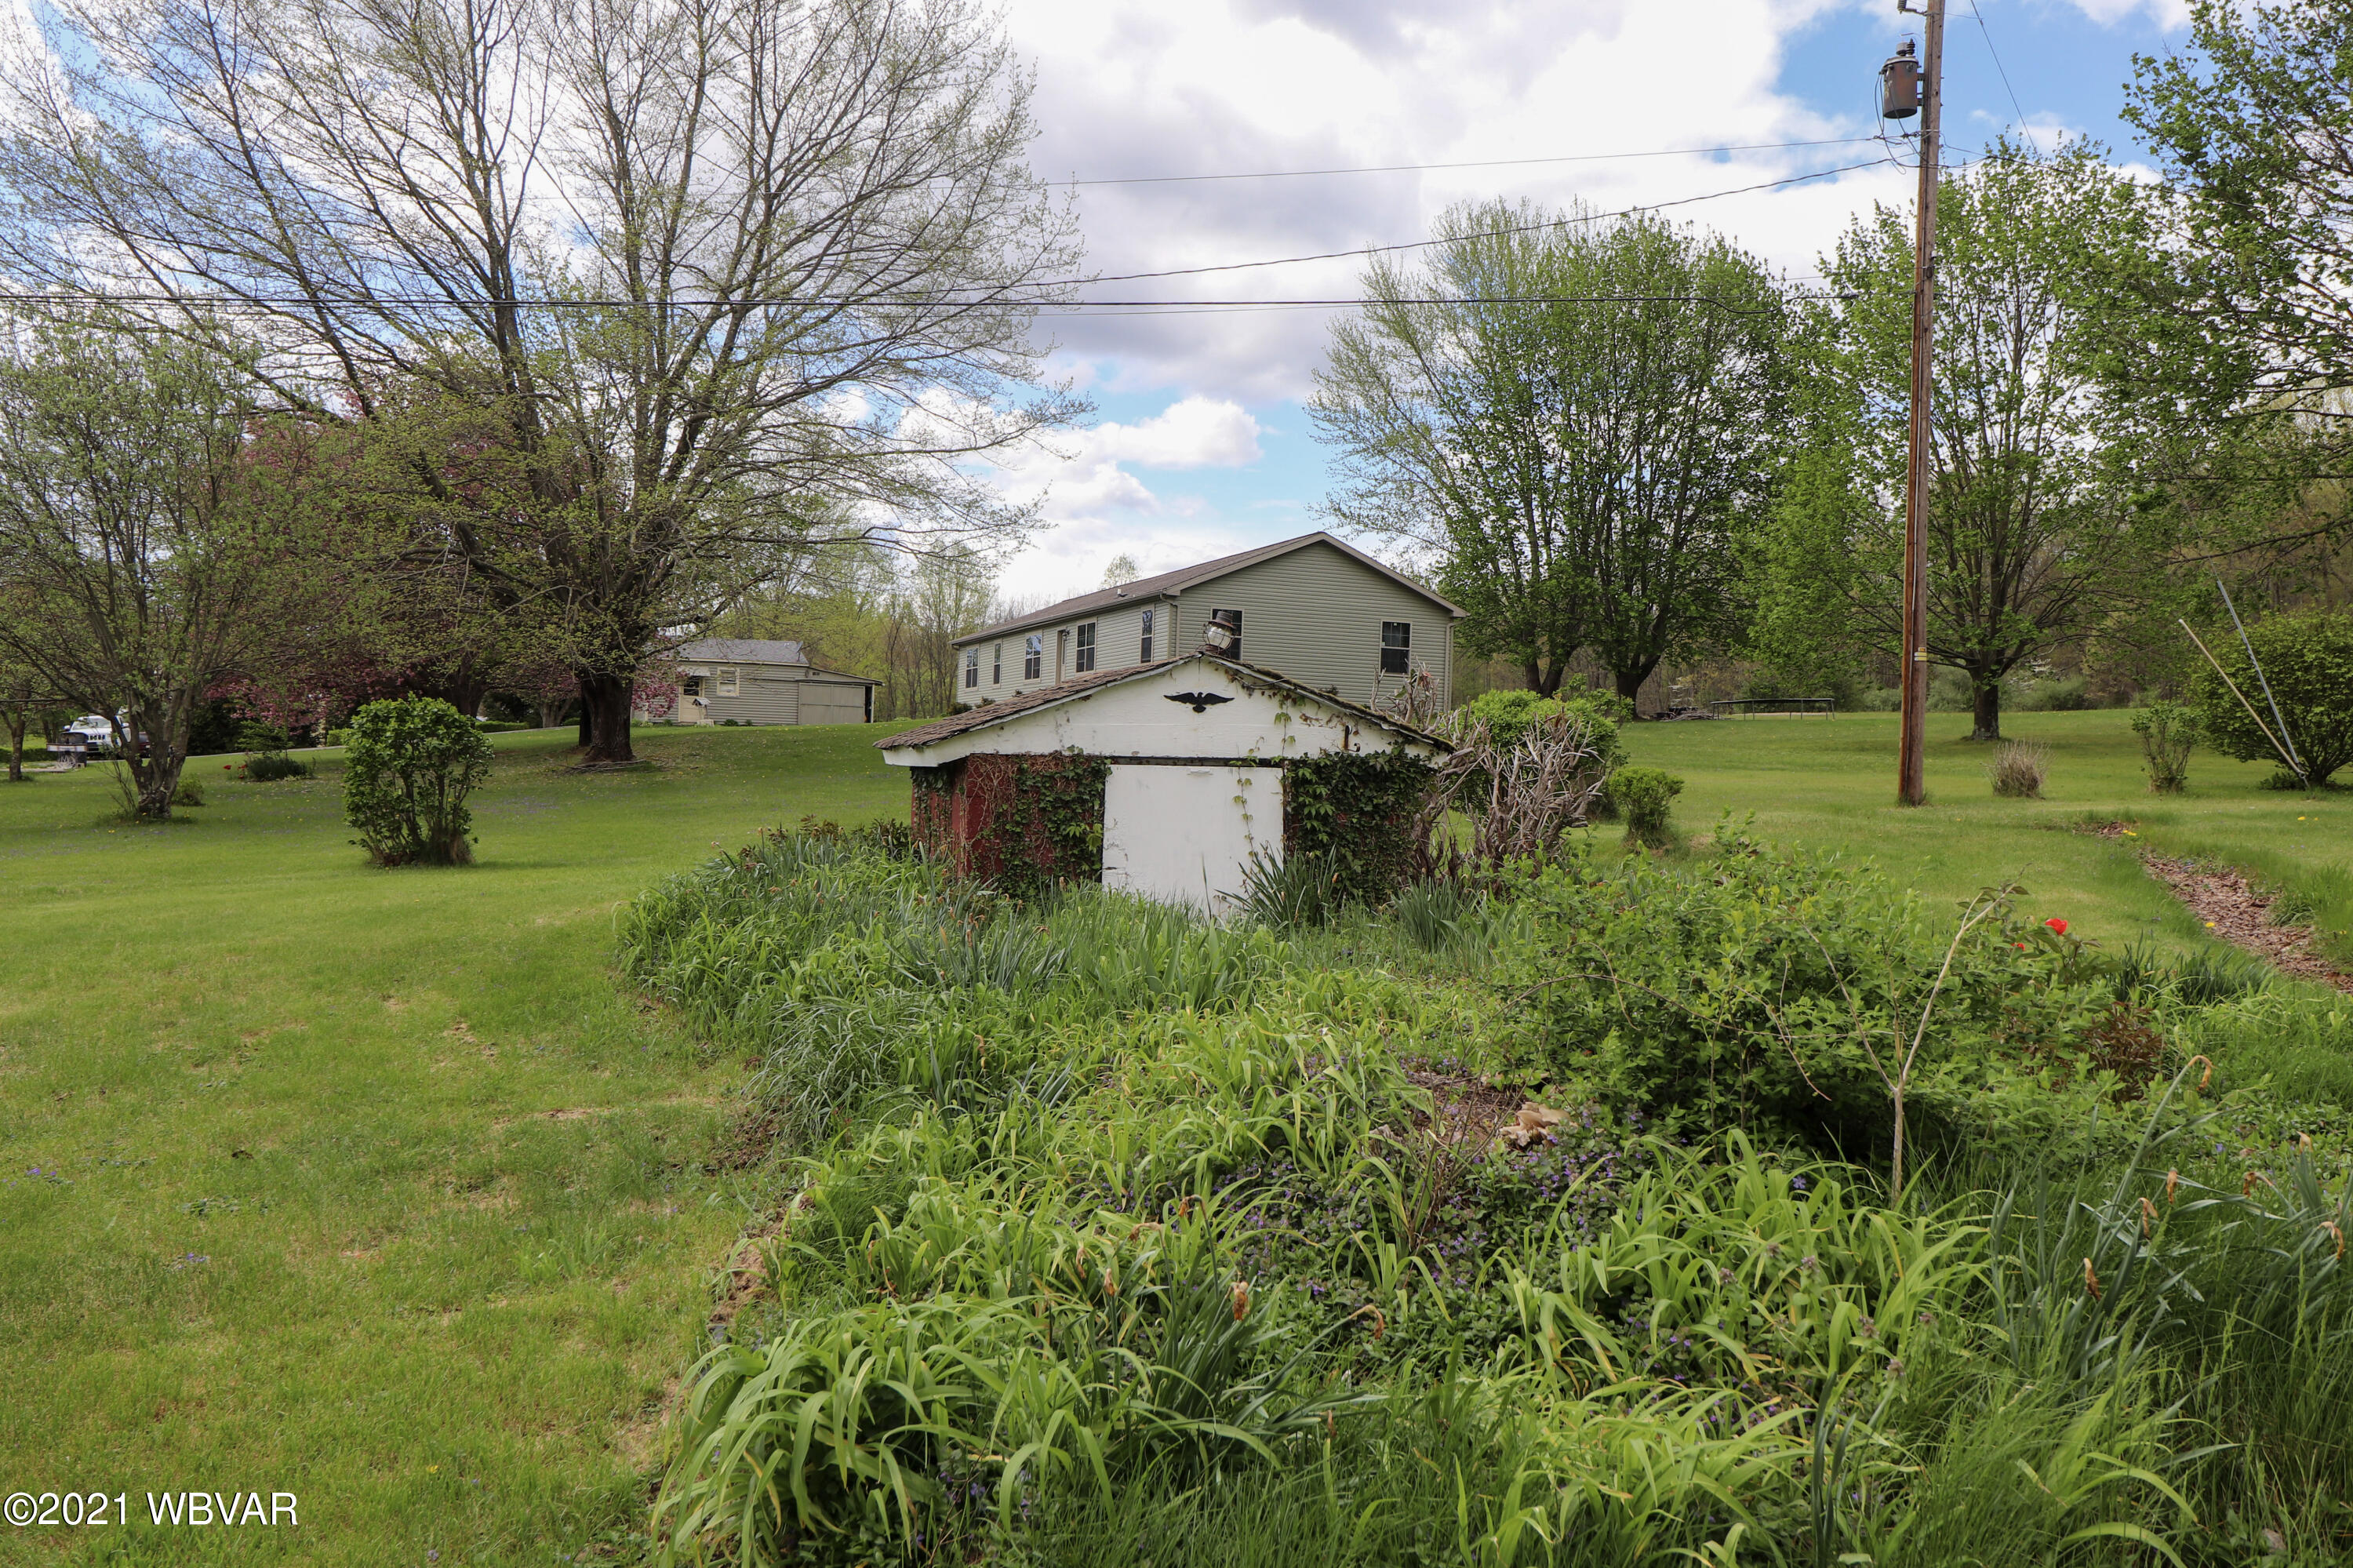 817 RT 54 HIGHWAY, Montgomery, PA 17752, 2 Bedrooms Bedrooms, ,1 BathroomBathrooms,Residential,For sale,RT 54,WB-92425